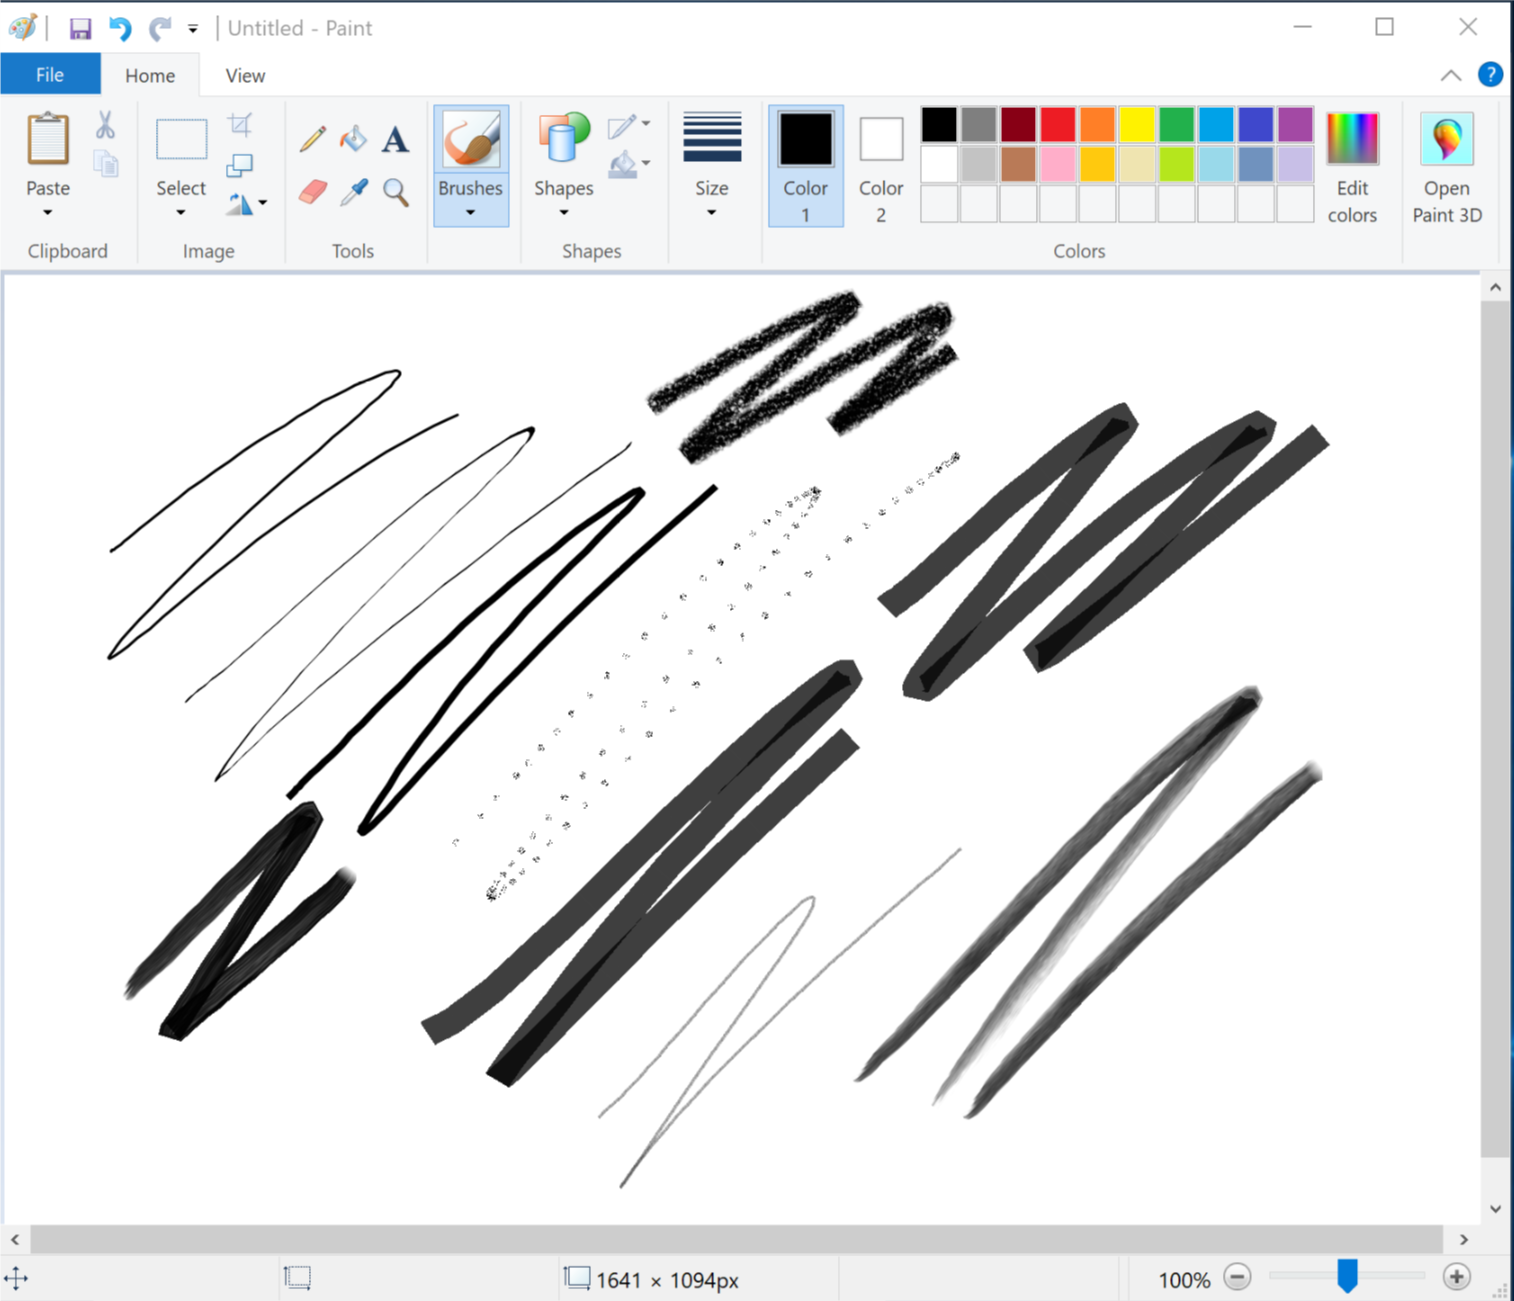 Most of Microsoft Paint's functionality is available the Windows Ink Workspace apps, but those are missing brush types, fonts and shapes.